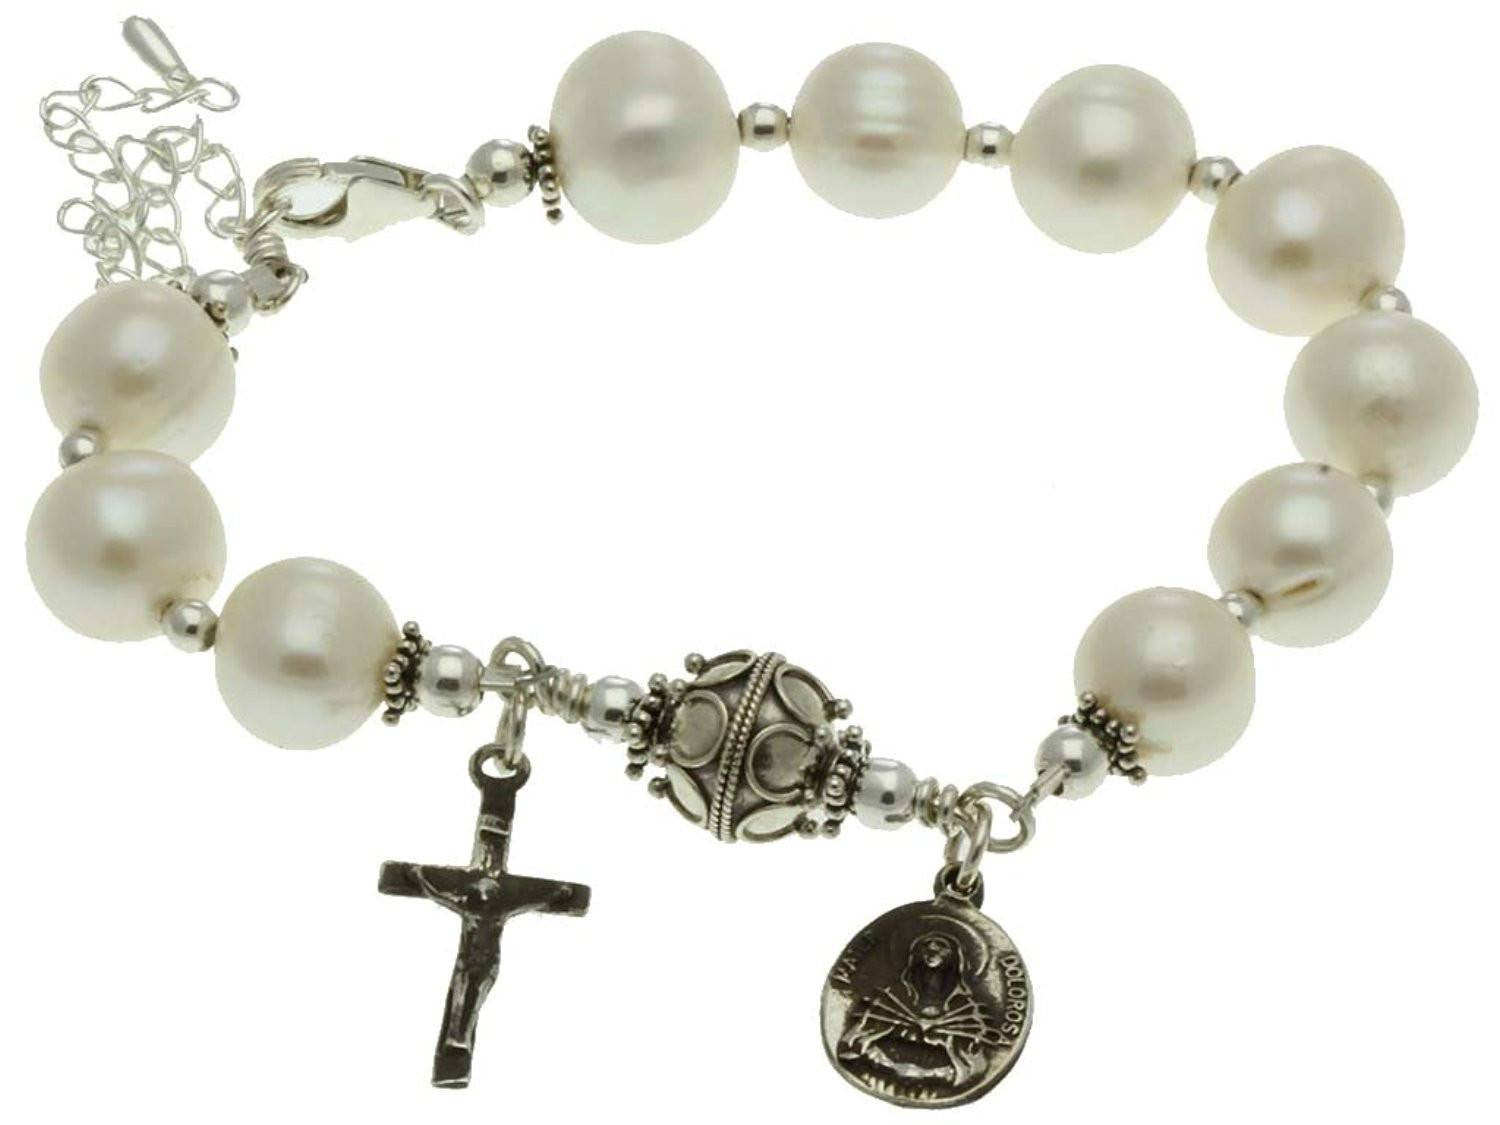 Sterling Silver 7 Sorrows Rosary Bracelet Pearl Crucifix & Our Lady of Sorrows